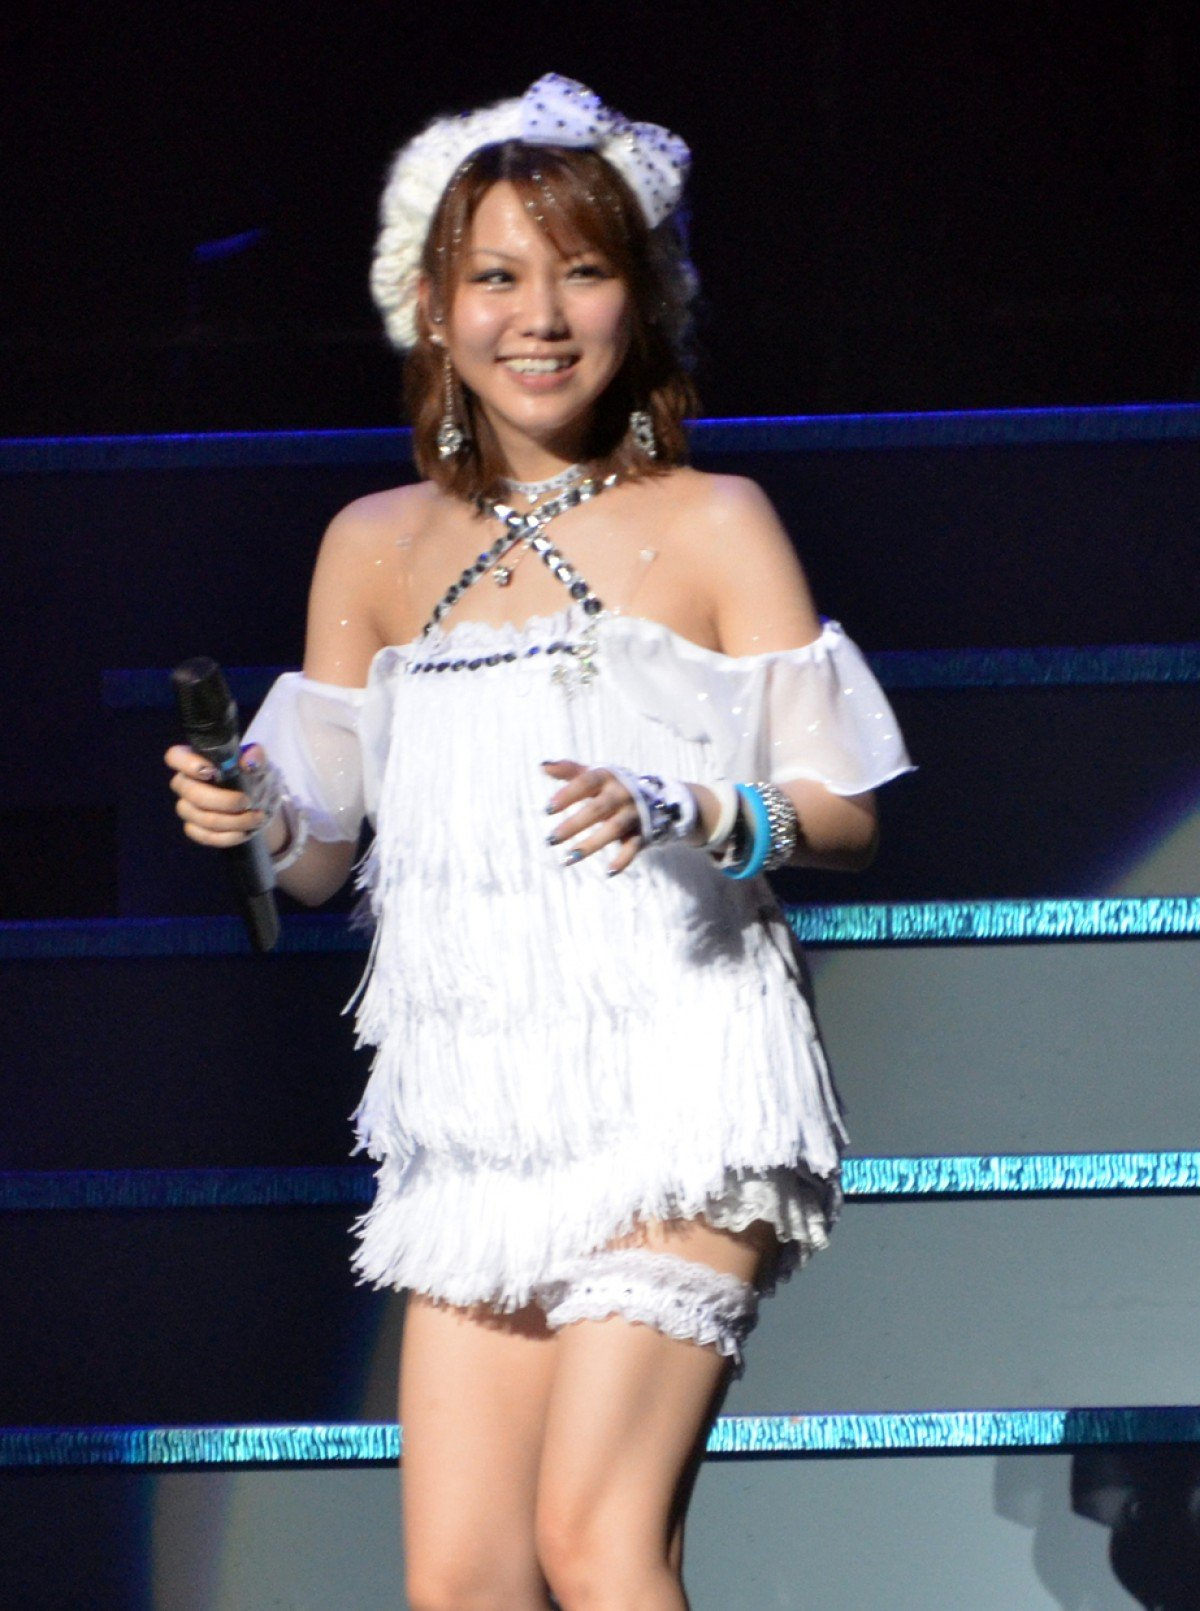 Reina Tanaka moves on from Morning Musume